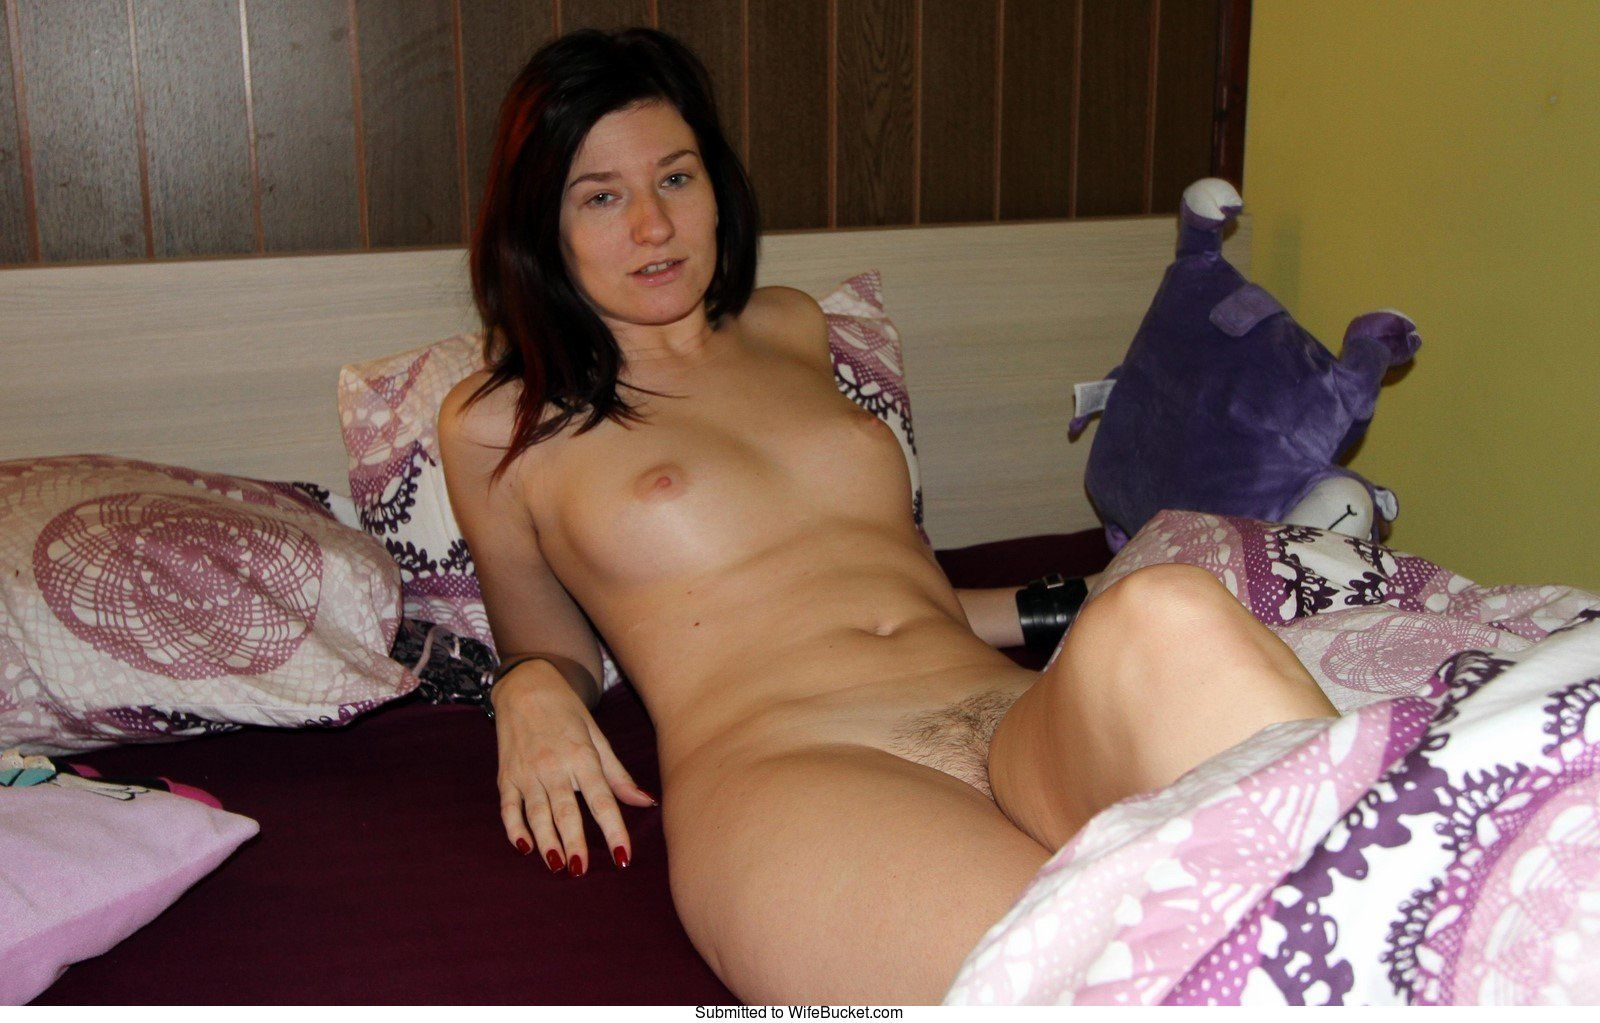 was specially amateur submit wife remarkable, very good